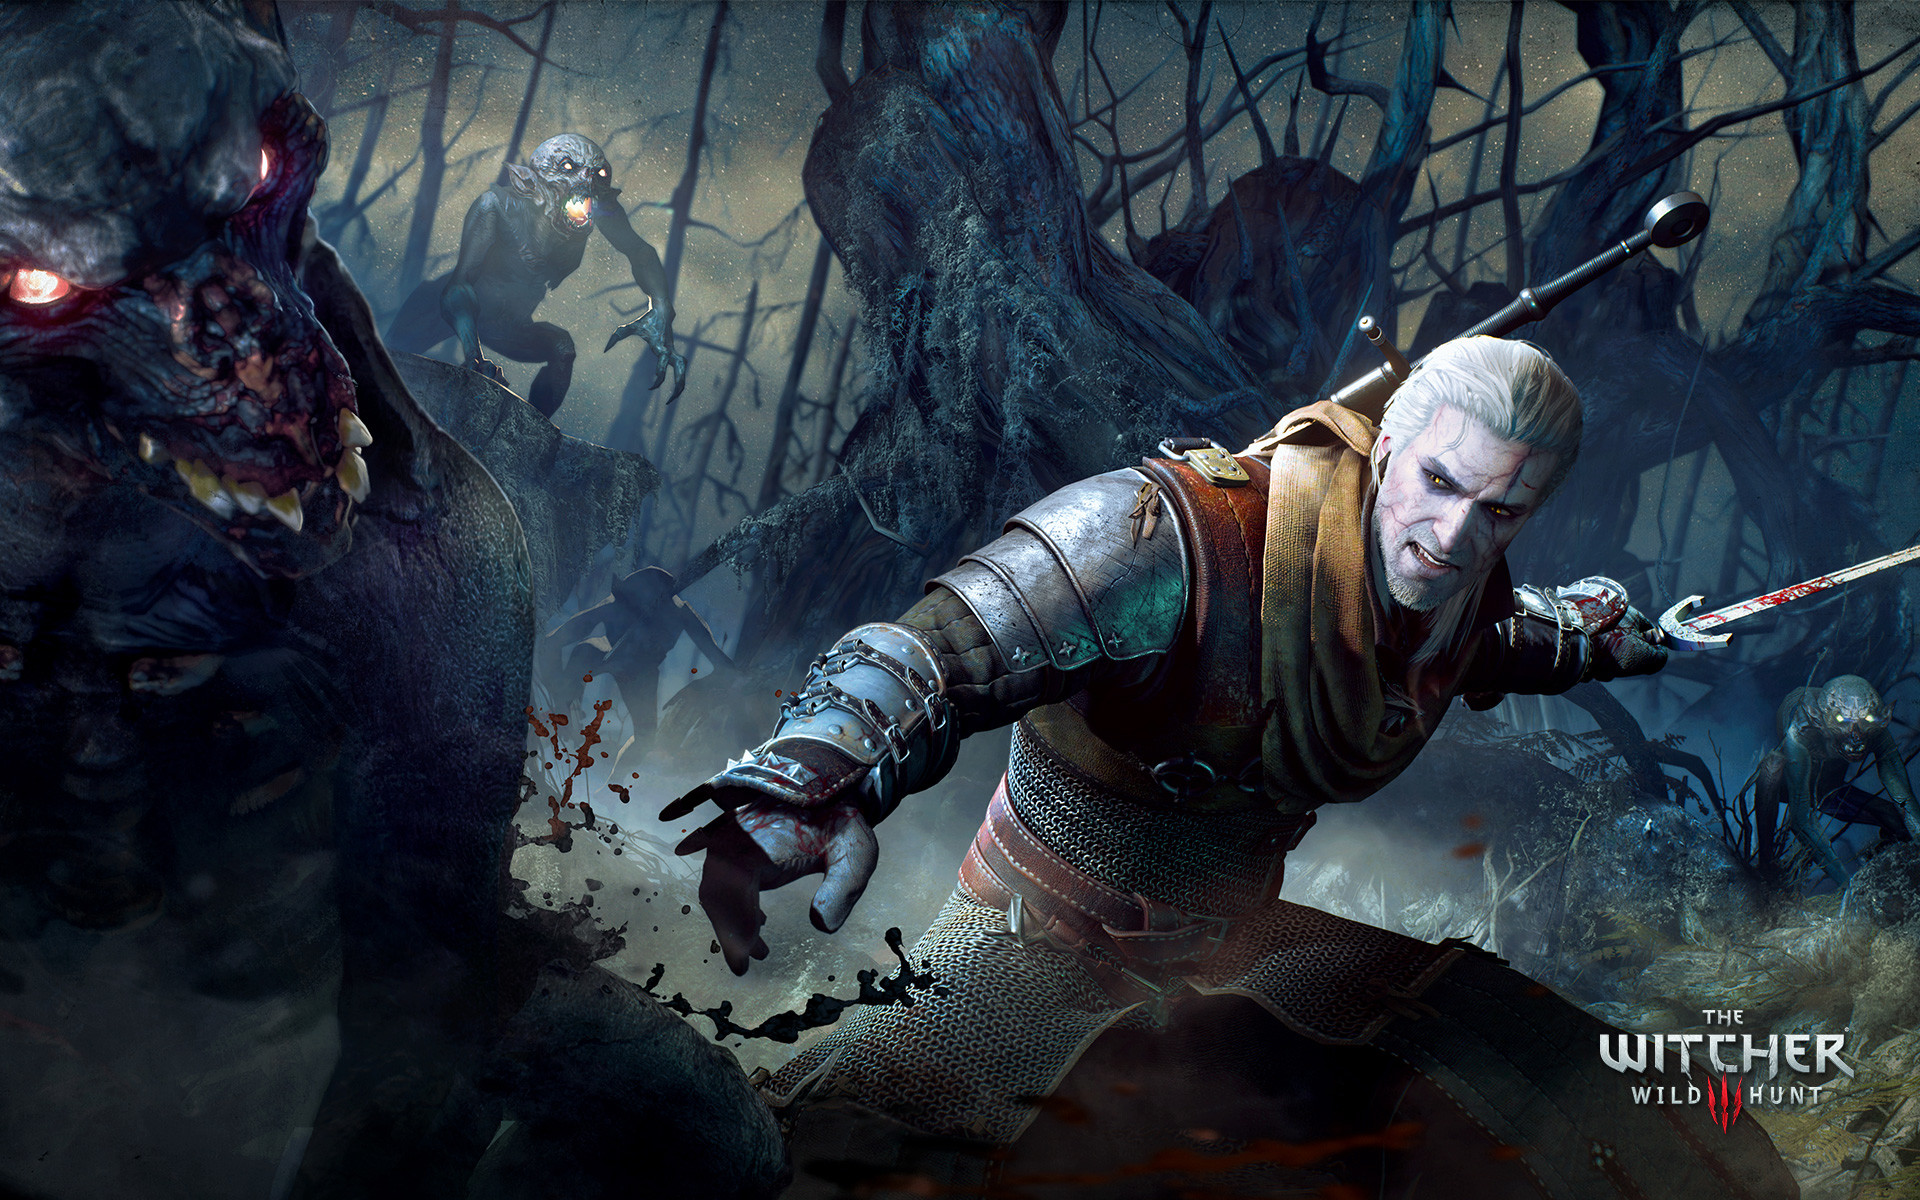 1920x1200 The Witcher Wild Hunt Dancer Wallpapers HD Wallpapers 1920×1080 The Witcher  Wallpaper (30